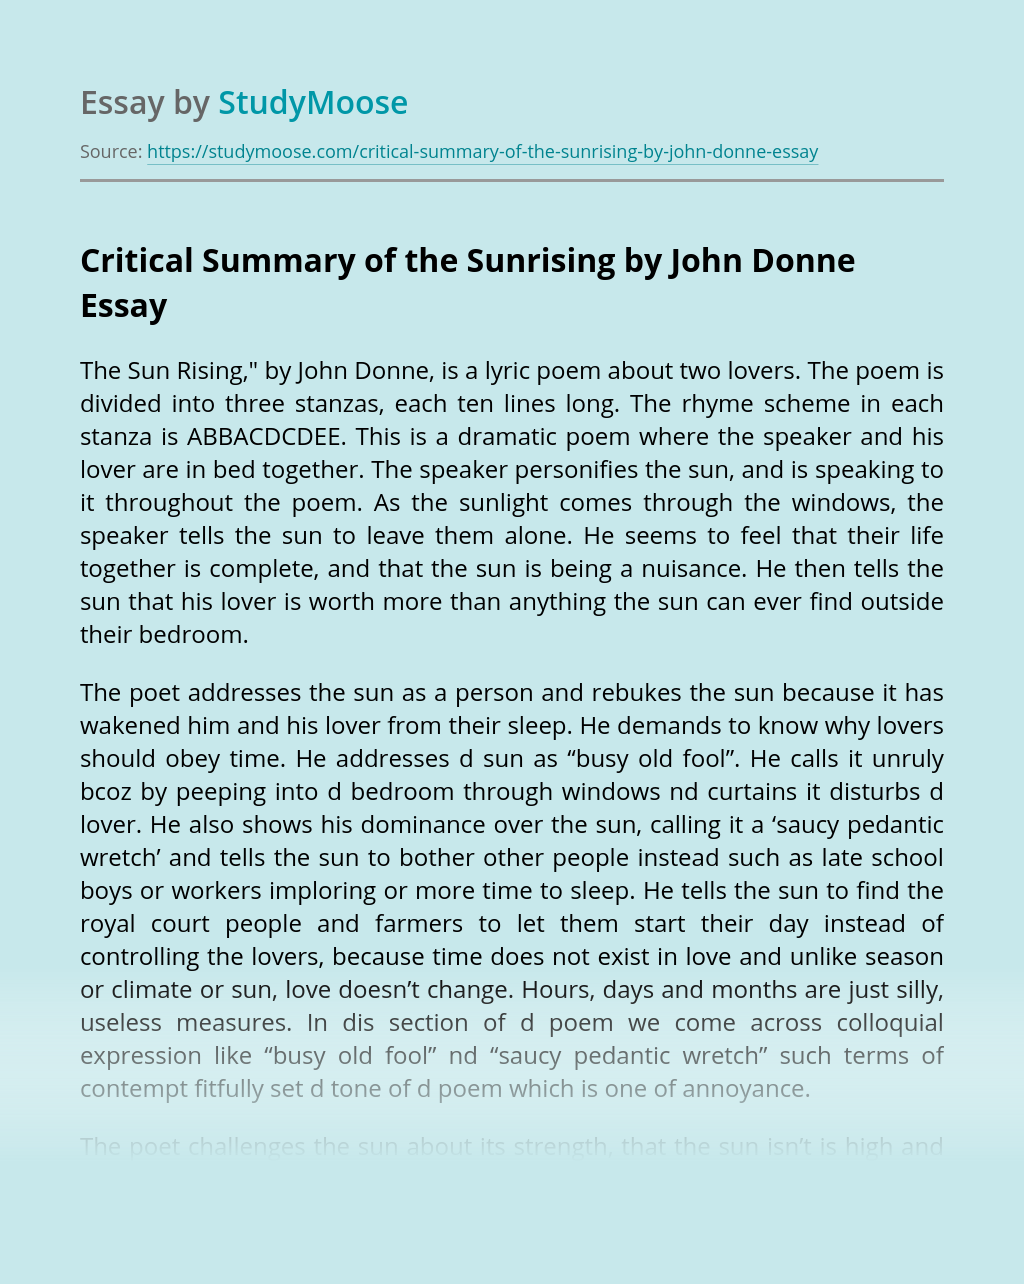 Critical Summary of the Sunrising by John Donne